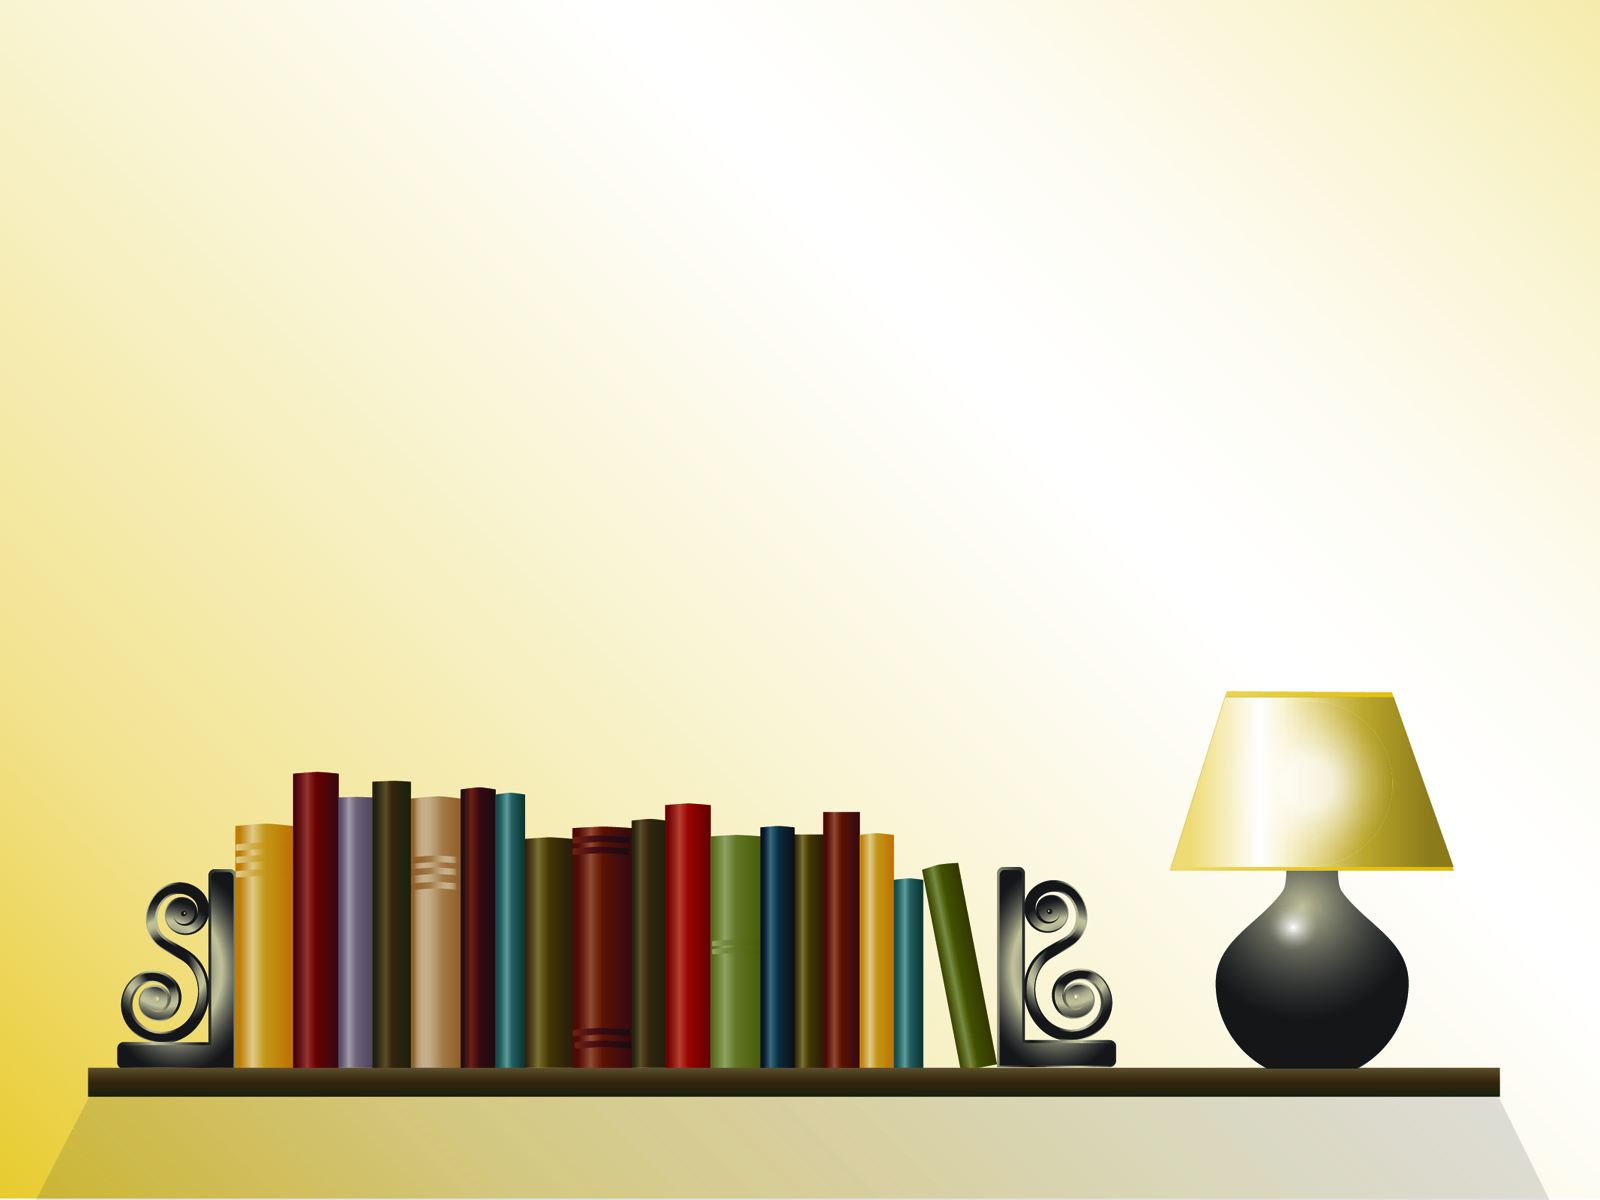 Book Shelf PPT Background